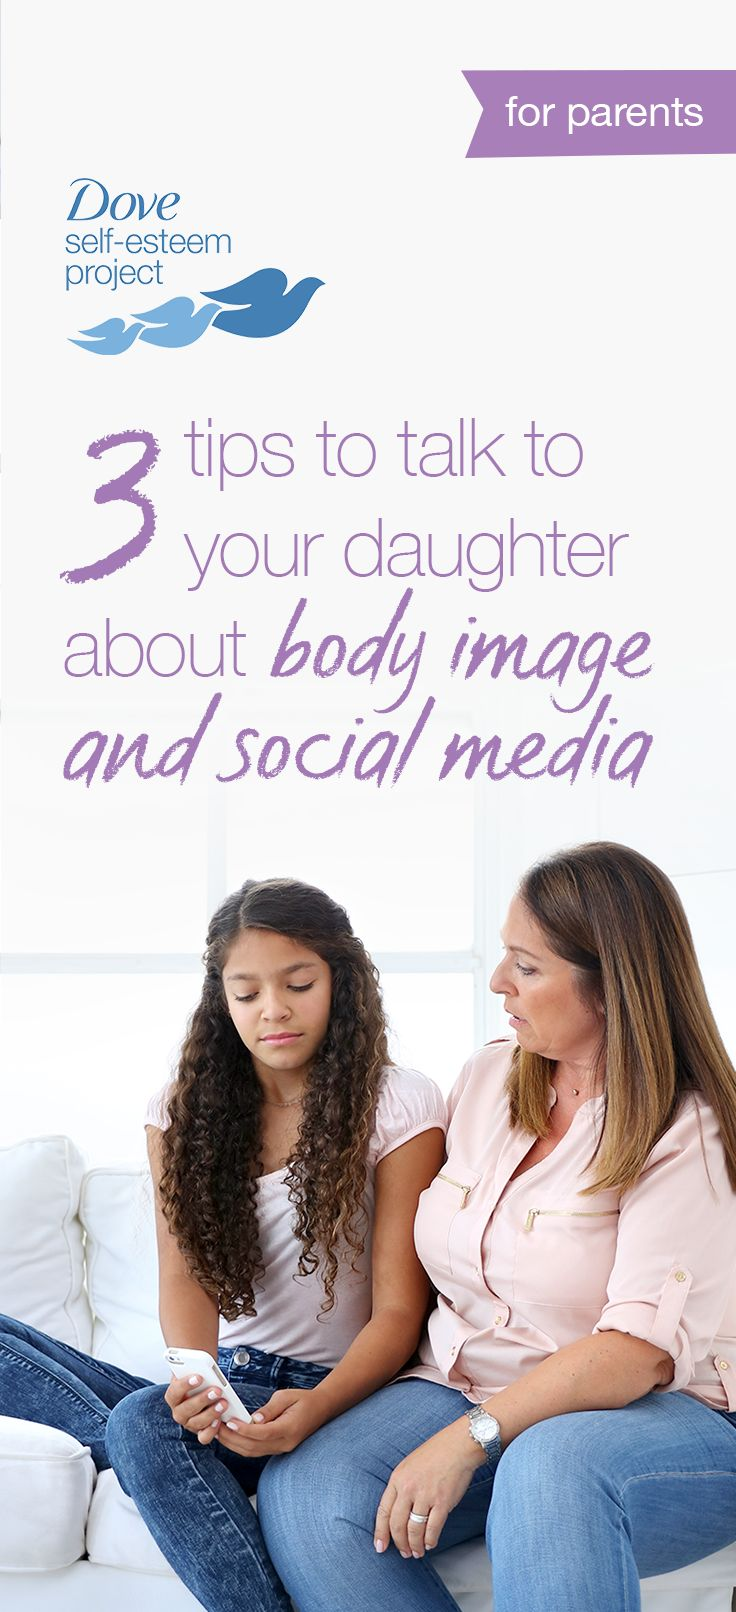 A recent study revealed social media can increase negative or obsessive thoughts about appearance, especially in girls. Since it's not going away any time soon, make sure you understand how social media affects your teens. Here are 3 tips to help shape the conversation with your daughter. For more info—head to www.pinterest.com/selfesteem. #SelfEsteemProject